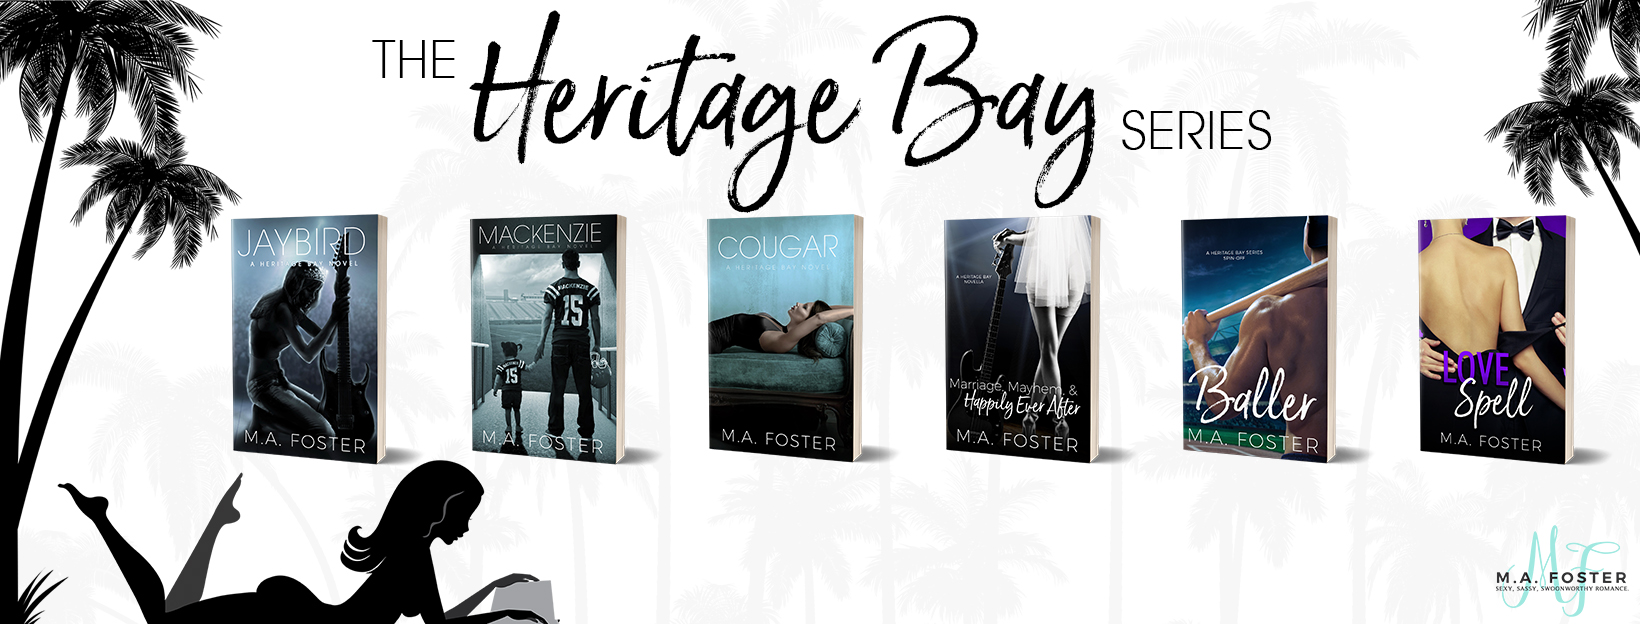 Heritage Bay Series